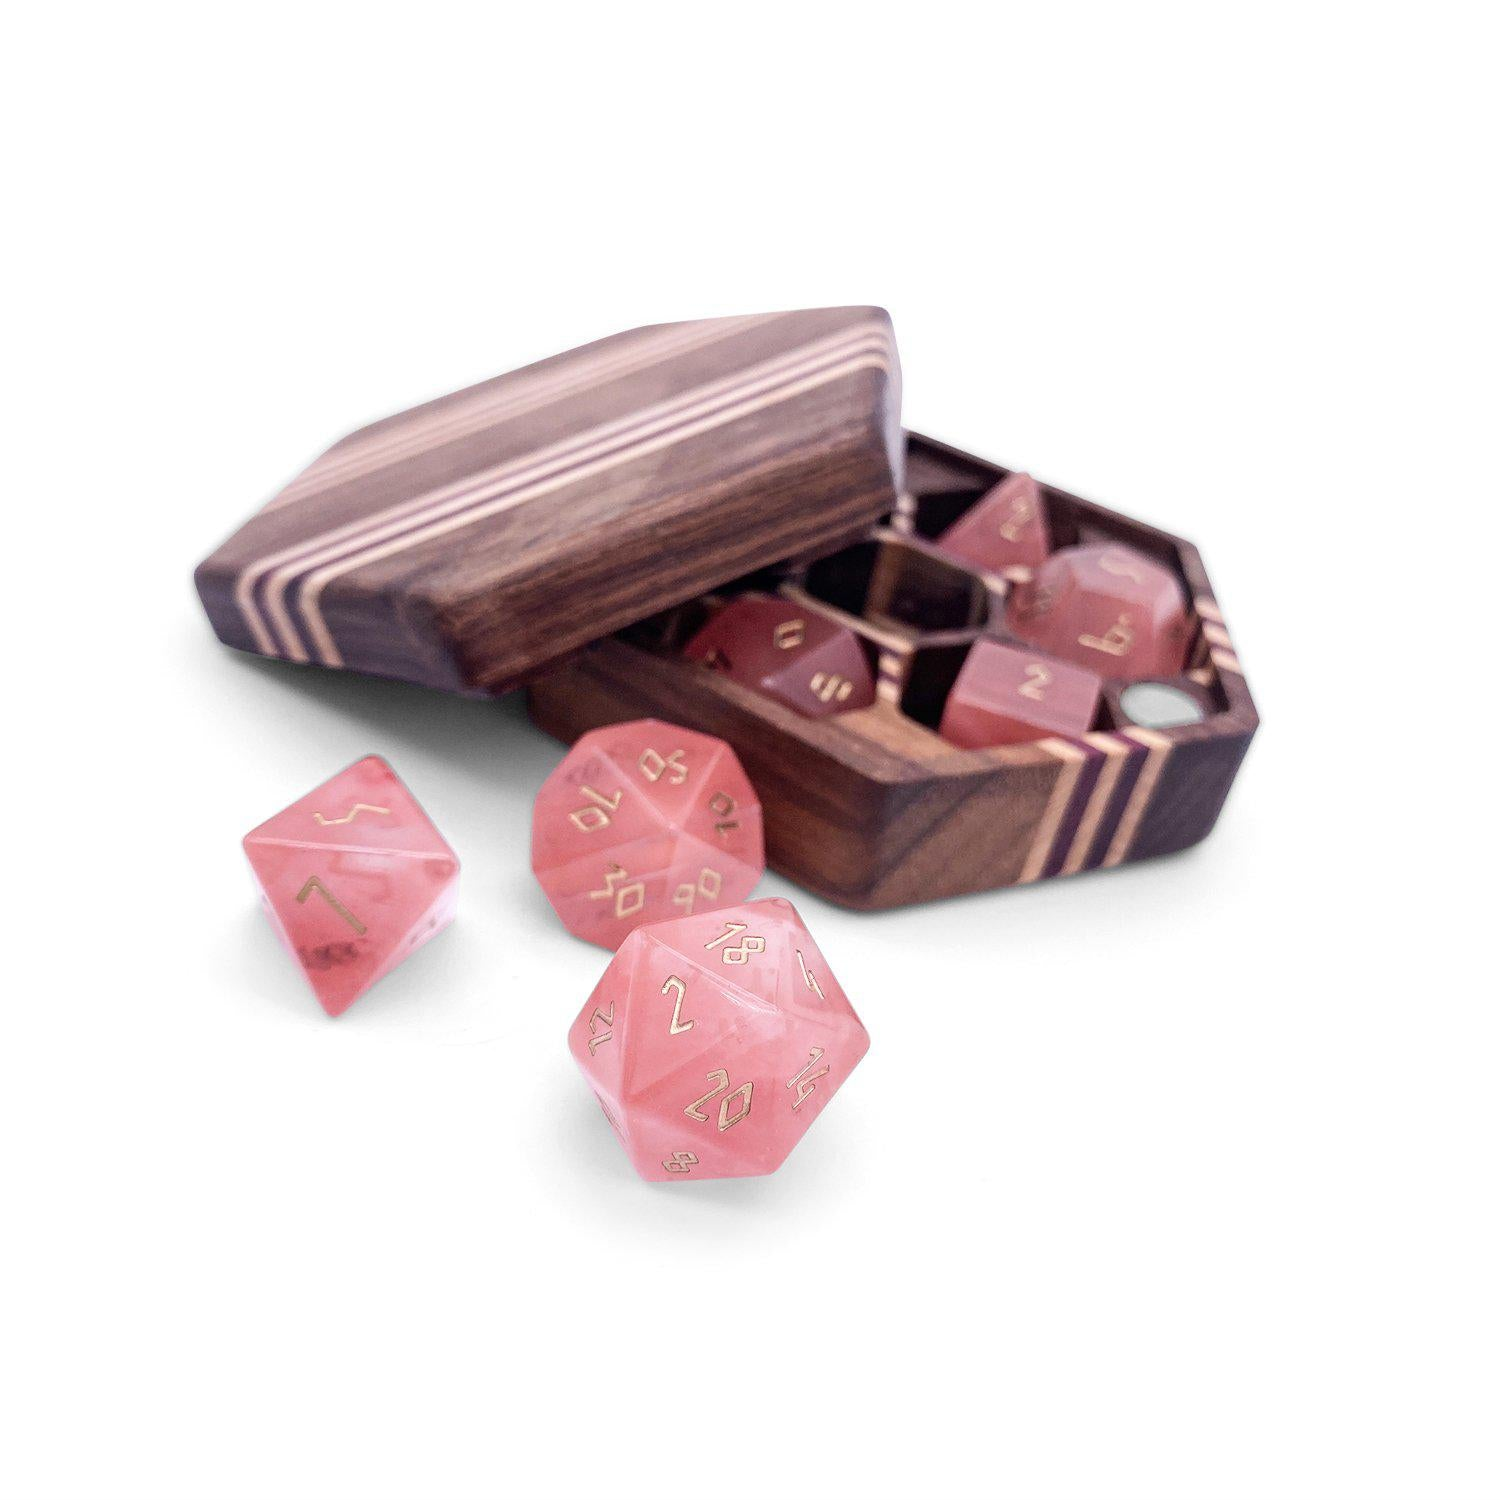 Watermelon Pink Candy Jade 7 Piece RPG Dice Set Gemstone